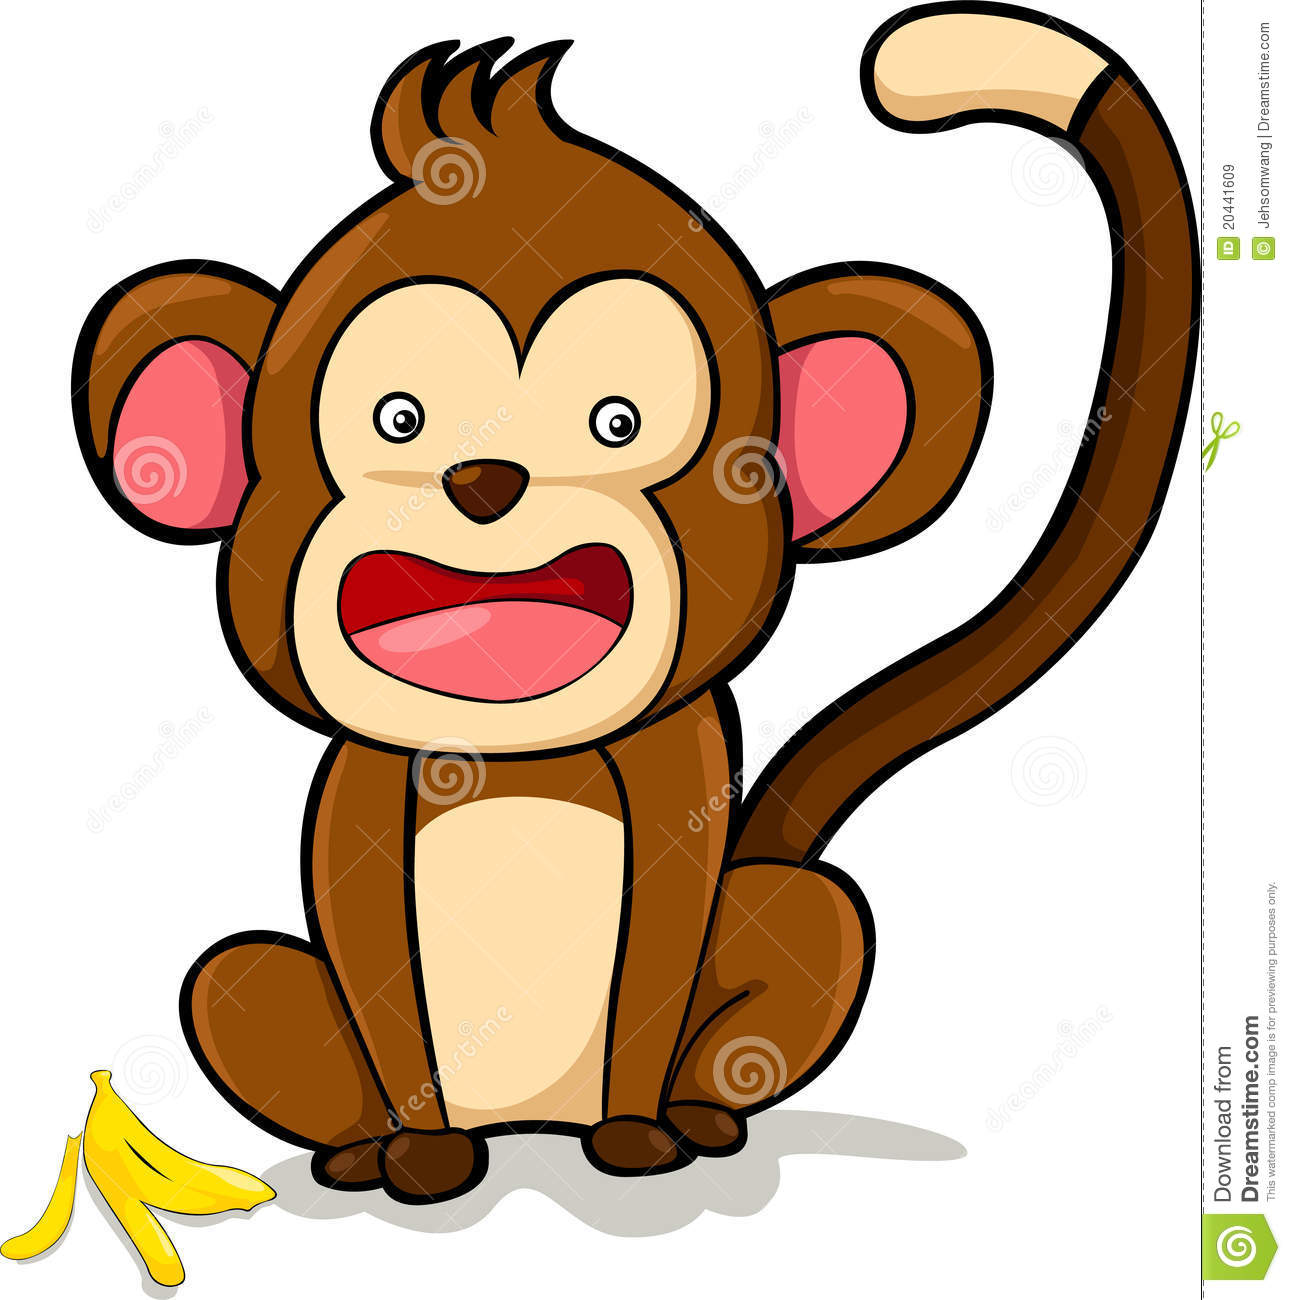 Vector Smile Monkey Illustration Royalty Free Stock Images - Image ...